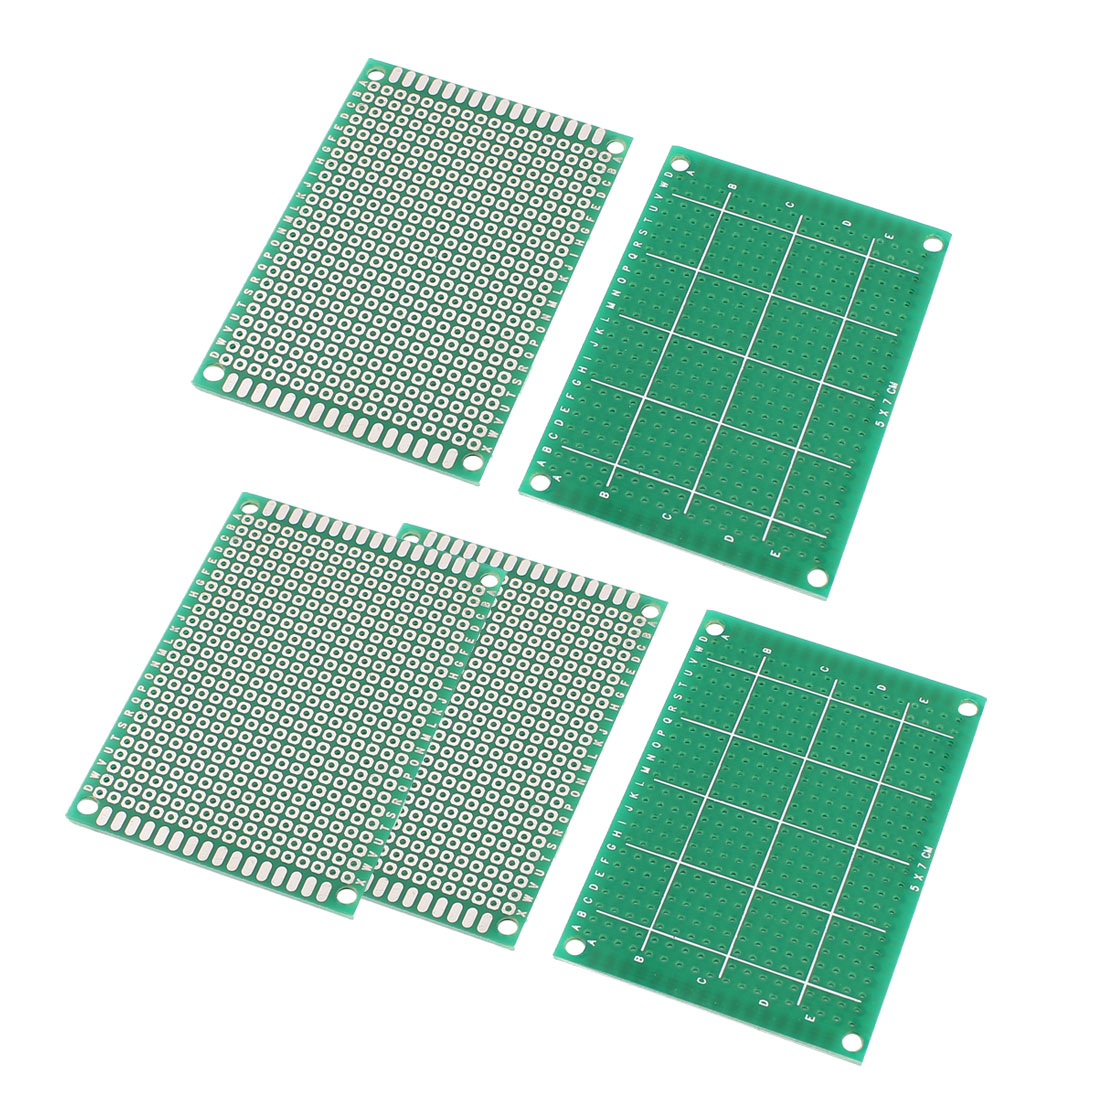 5 Pcs 2.54mm Hole Pitch One Side Tin Plated Universal PCB Board 5cm x 7cm